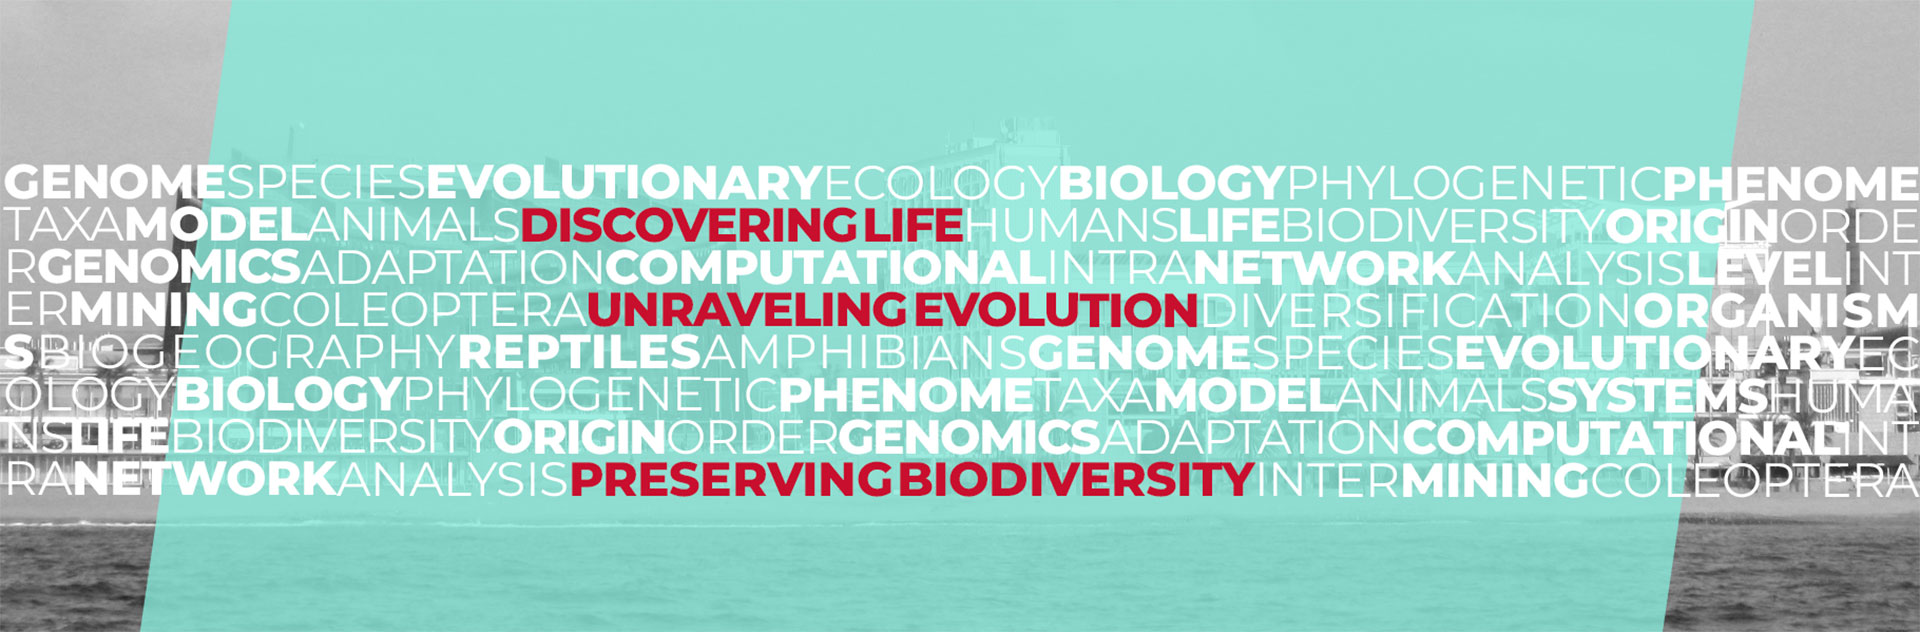 Discovering life - Unraveling Evolution - Preserving Biodiversity